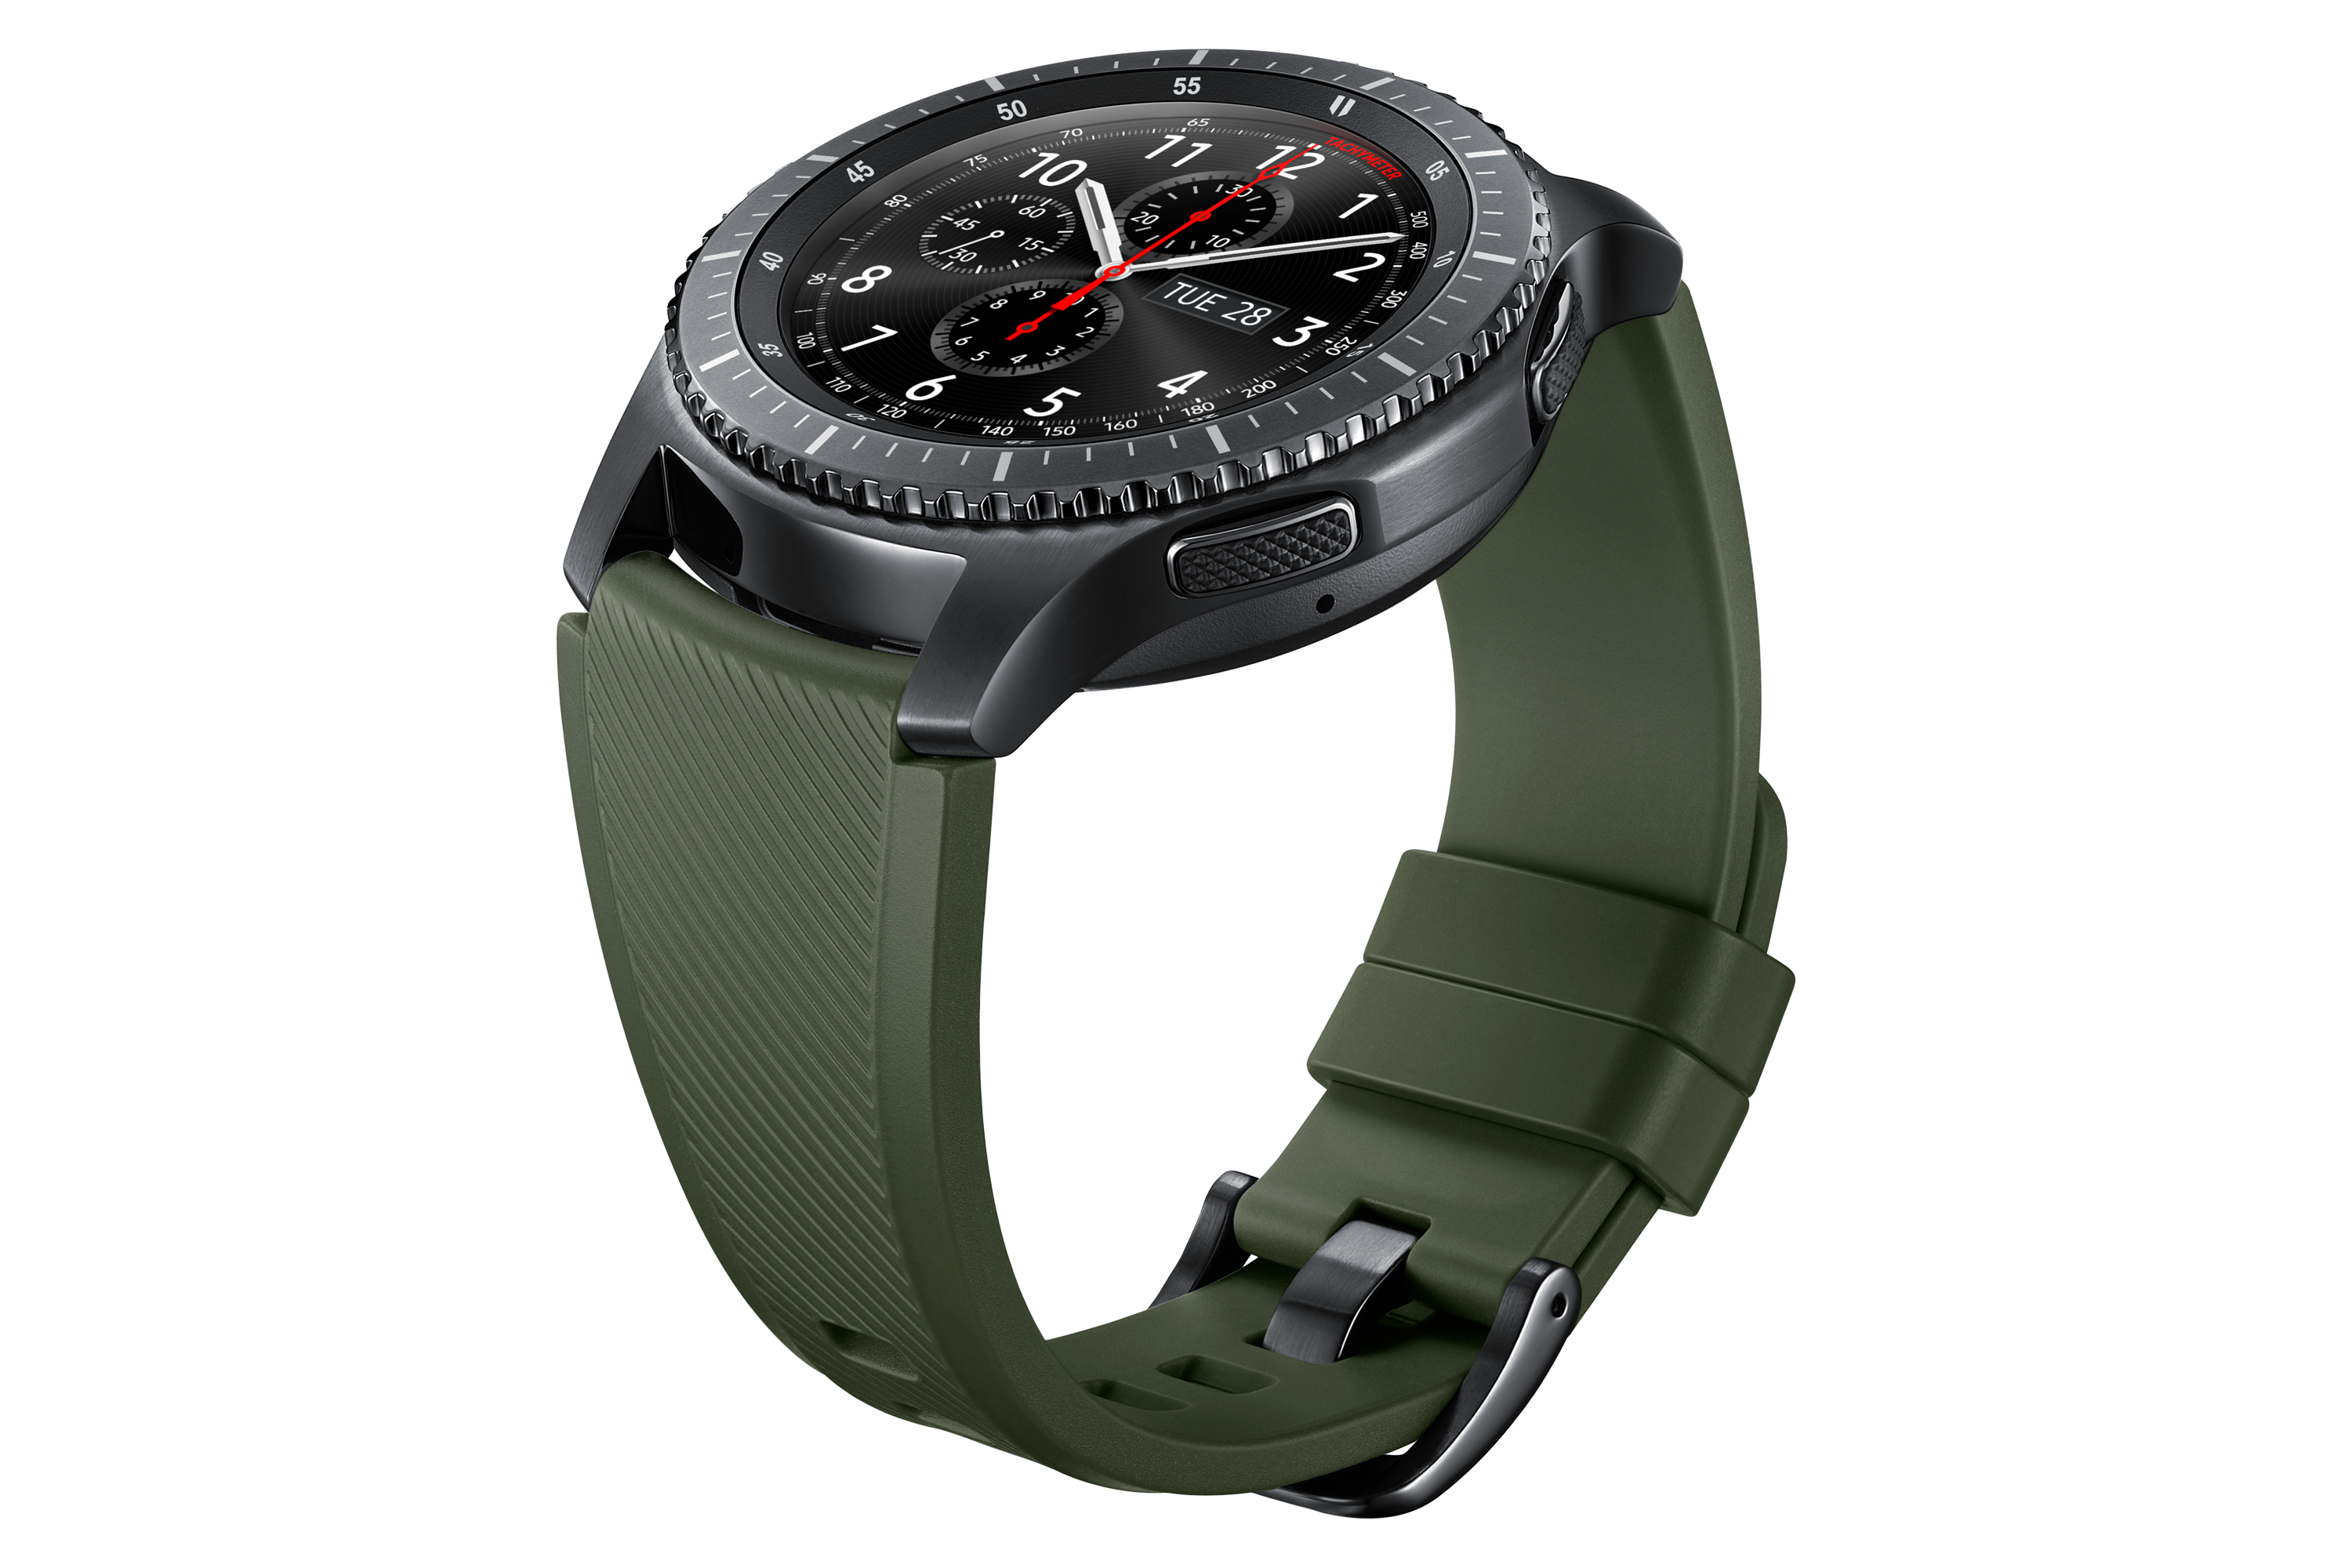 Gear S3 - Active Silicon Band